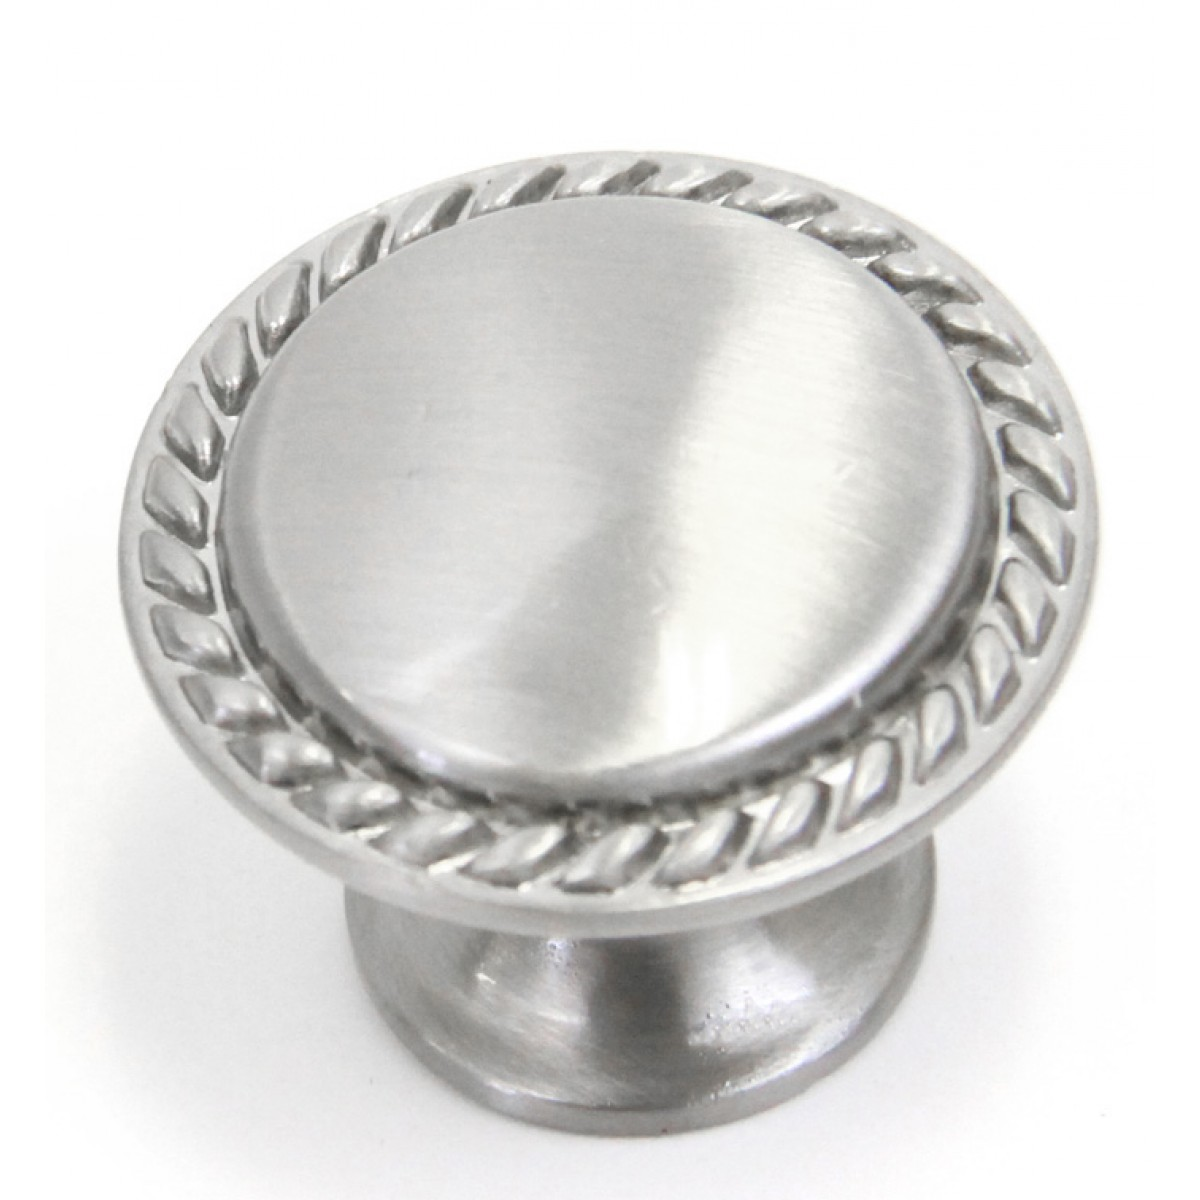 Bead Cabinet Pull Brushed Nickel Finish